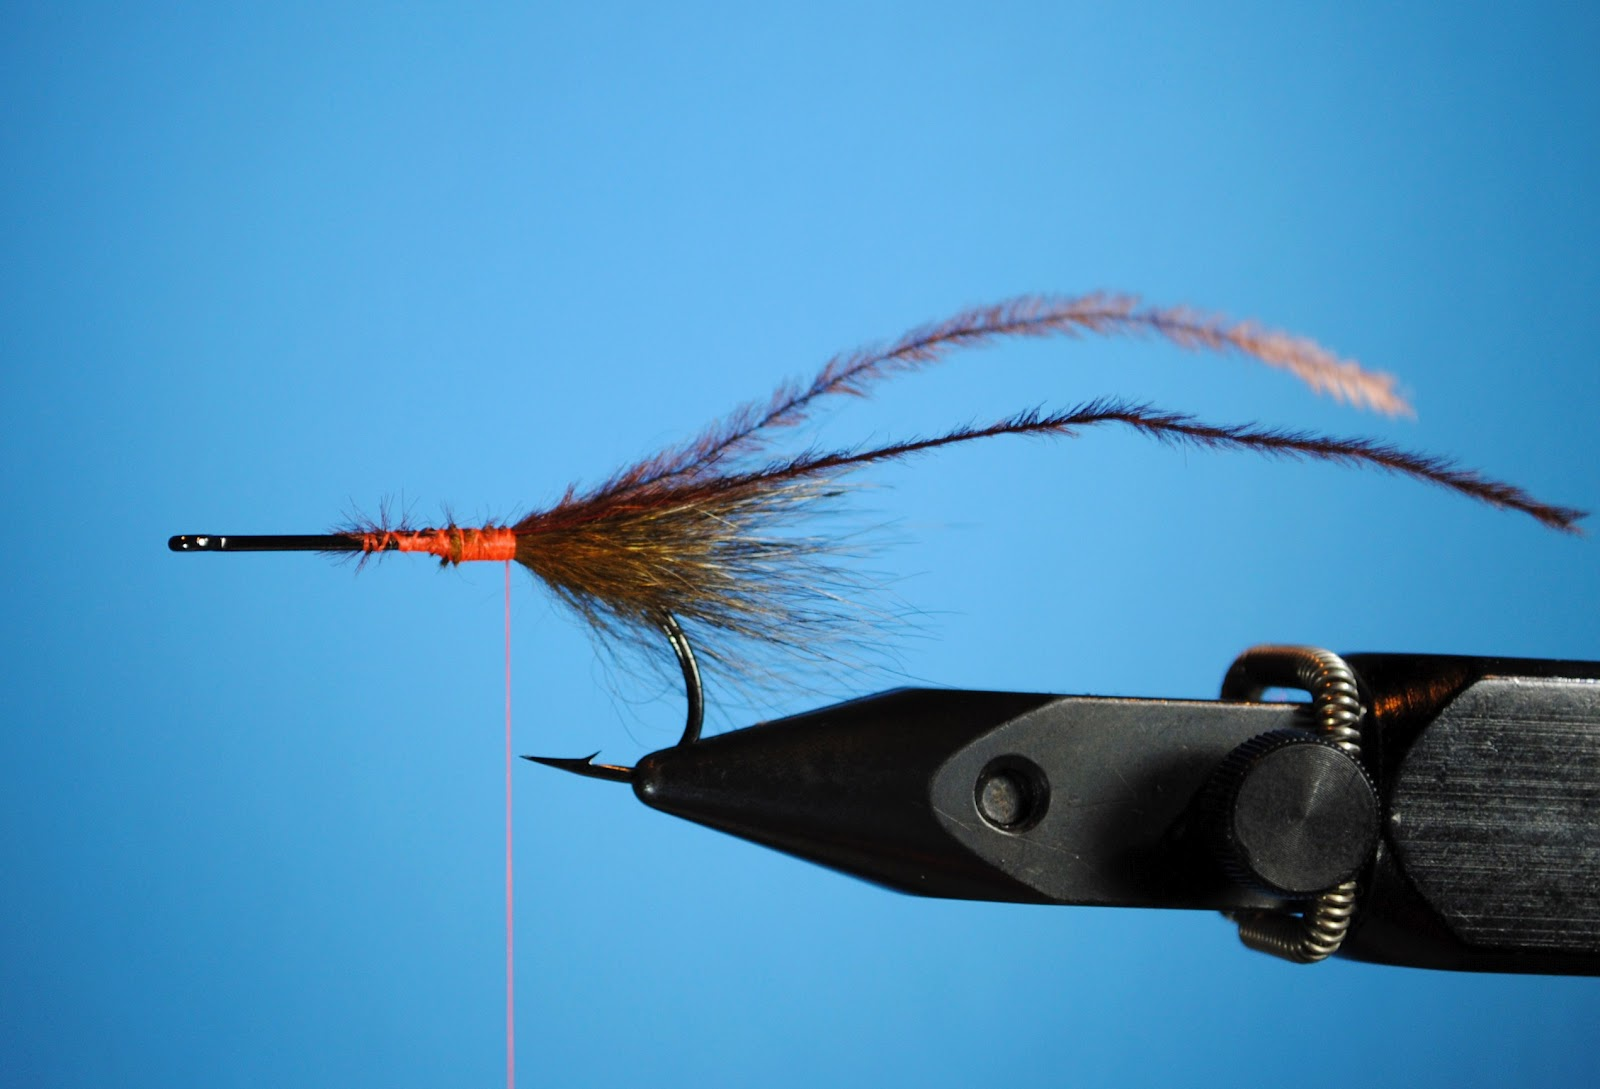 Steelhead alley fly tying senyo 39 s preyfish for Fish steelhead alley